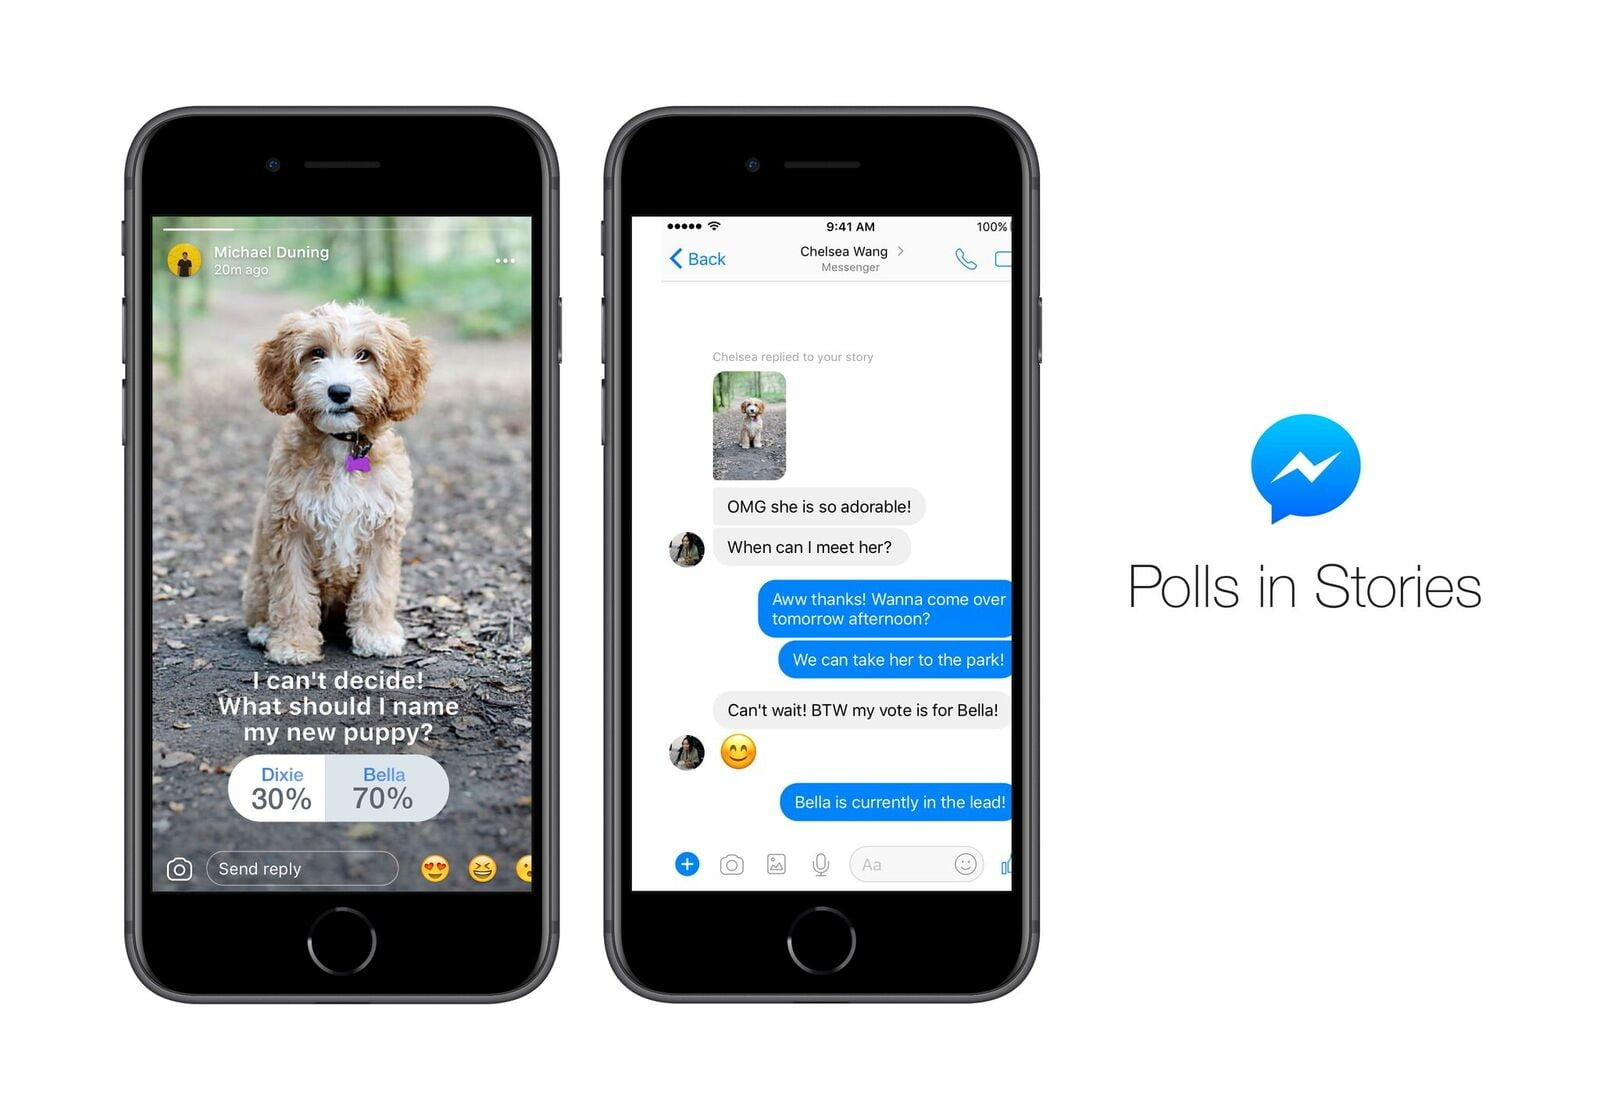 Users Can Now Add Polls To Their Stories On Facebook